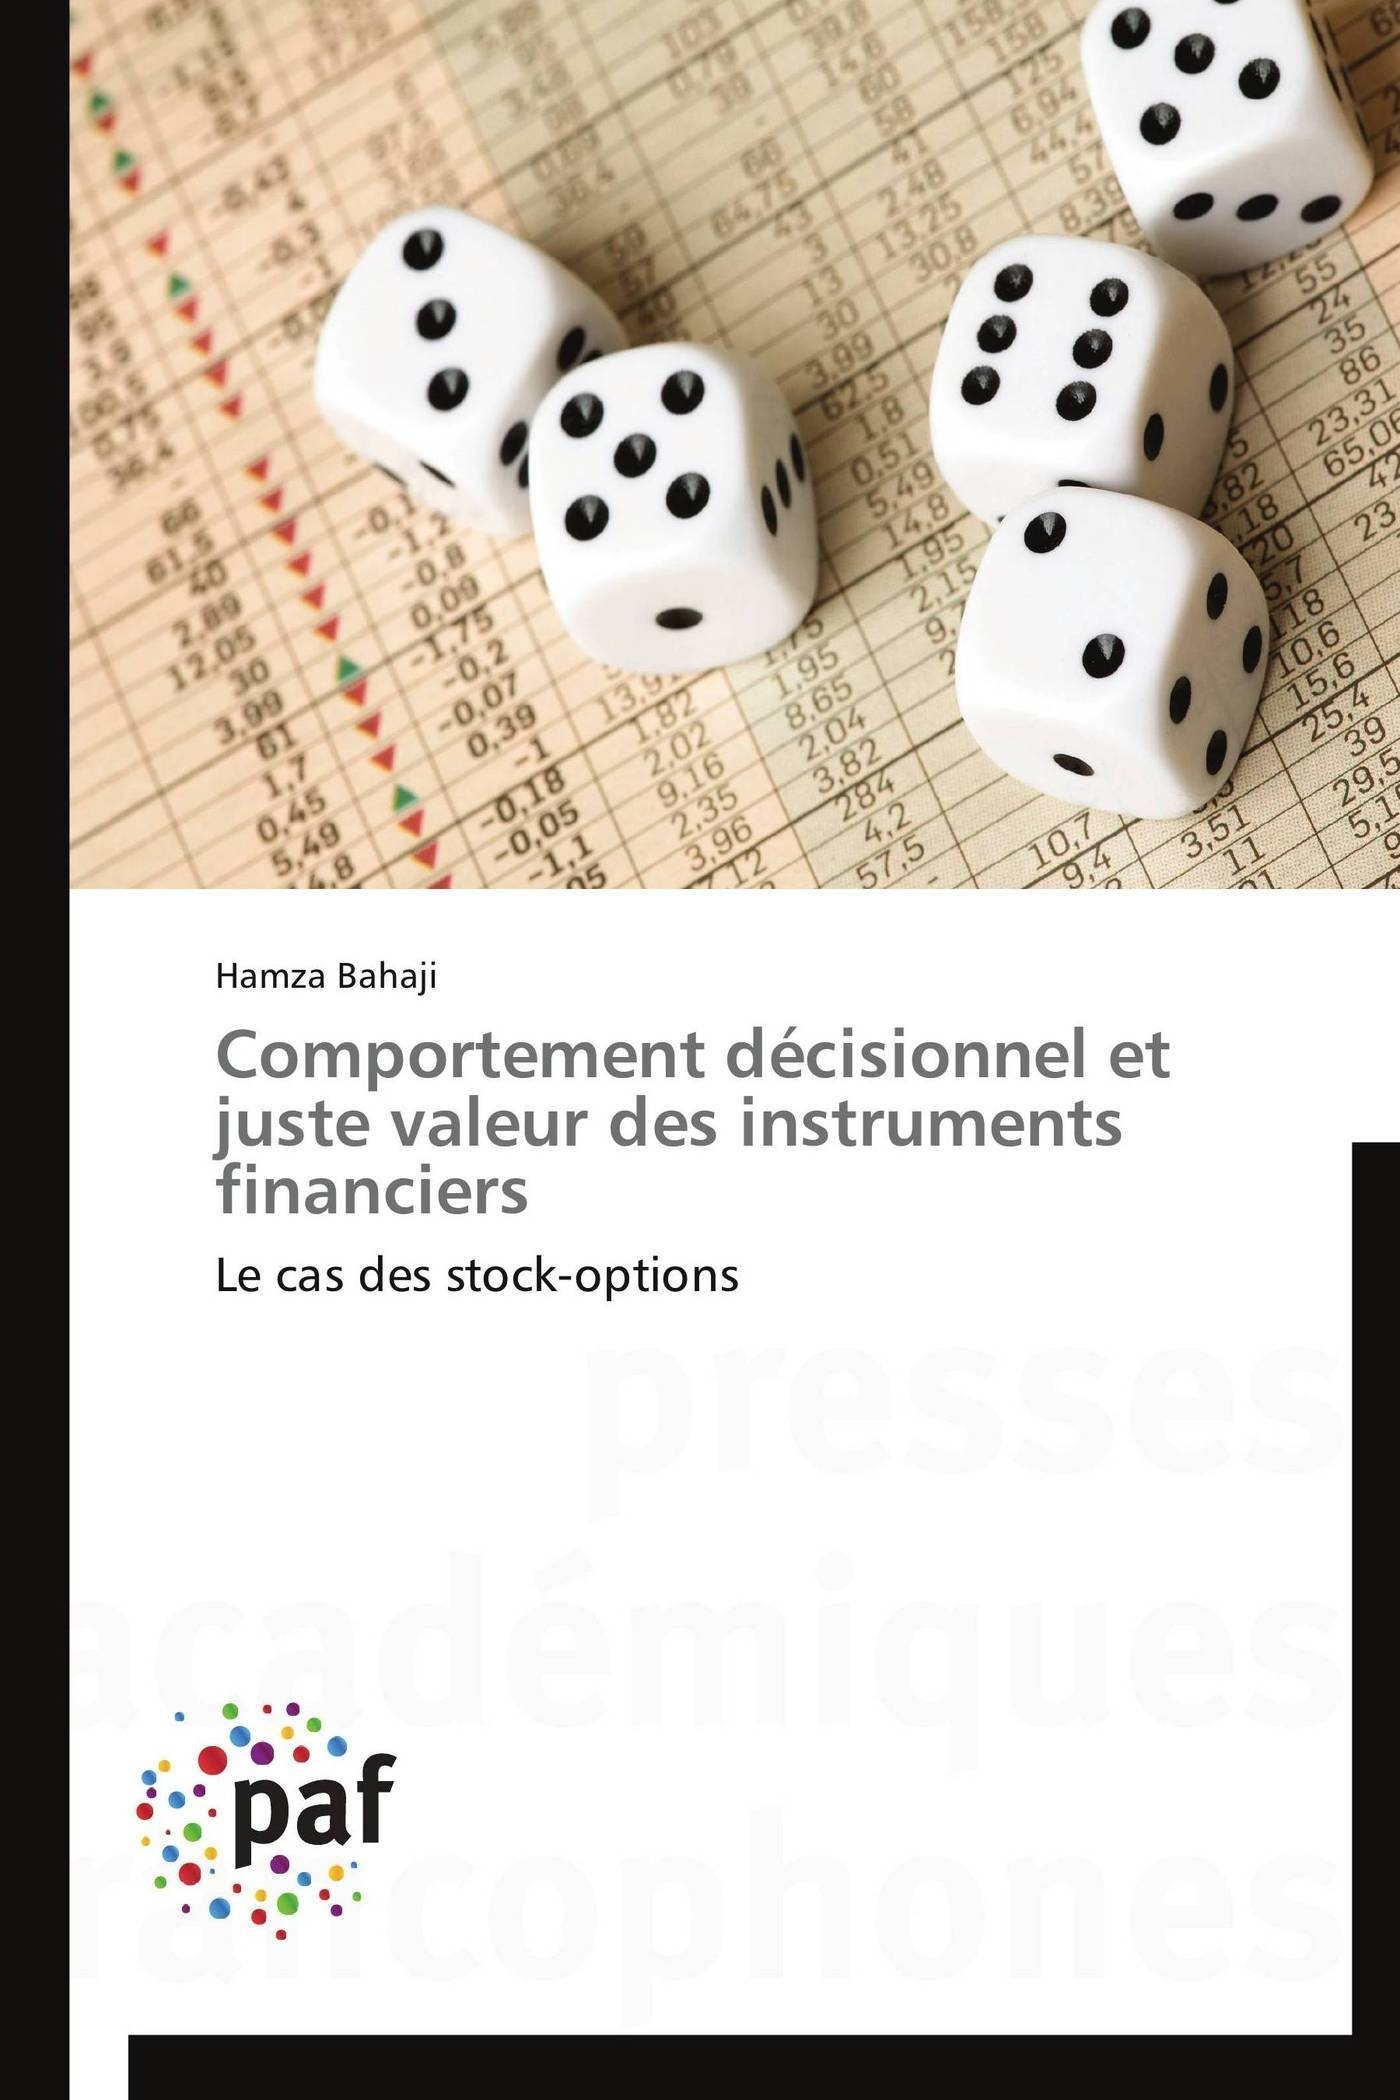 COMPORTEMENT DECISIONNEL ET JUSTE VALEUR DES INSTRUMENTS FINANCIERS